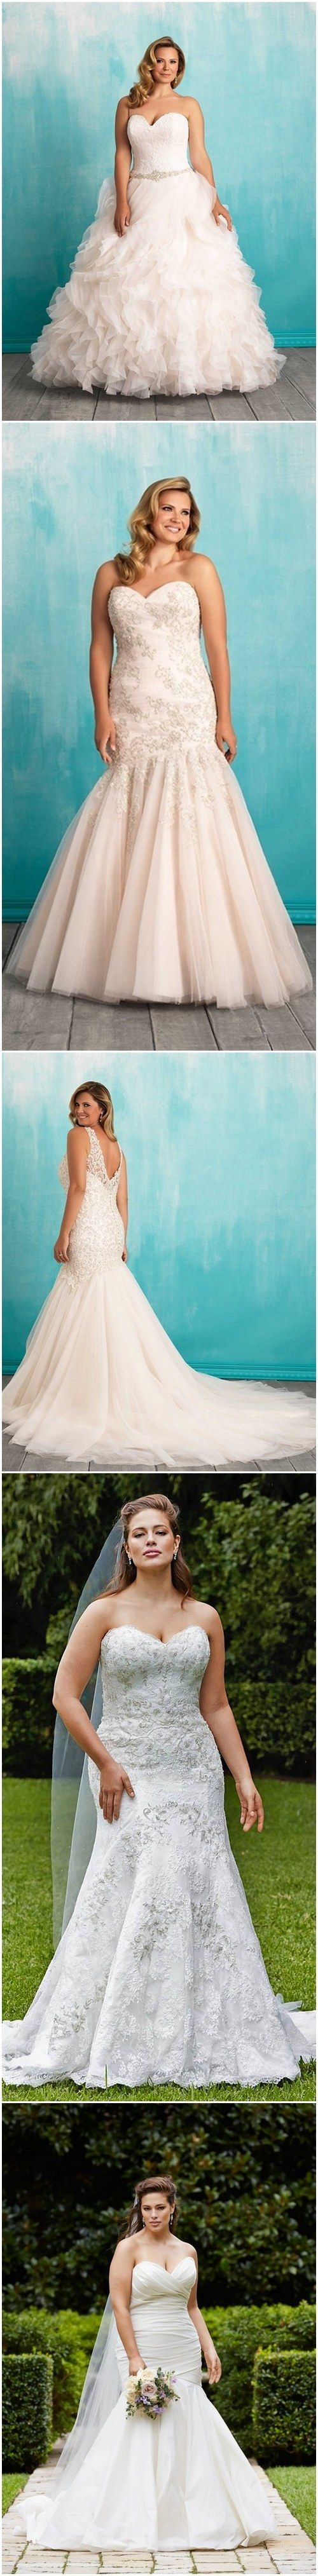 51 best Plus Size Wedding Dresses images on Pinterest | Wedding ...